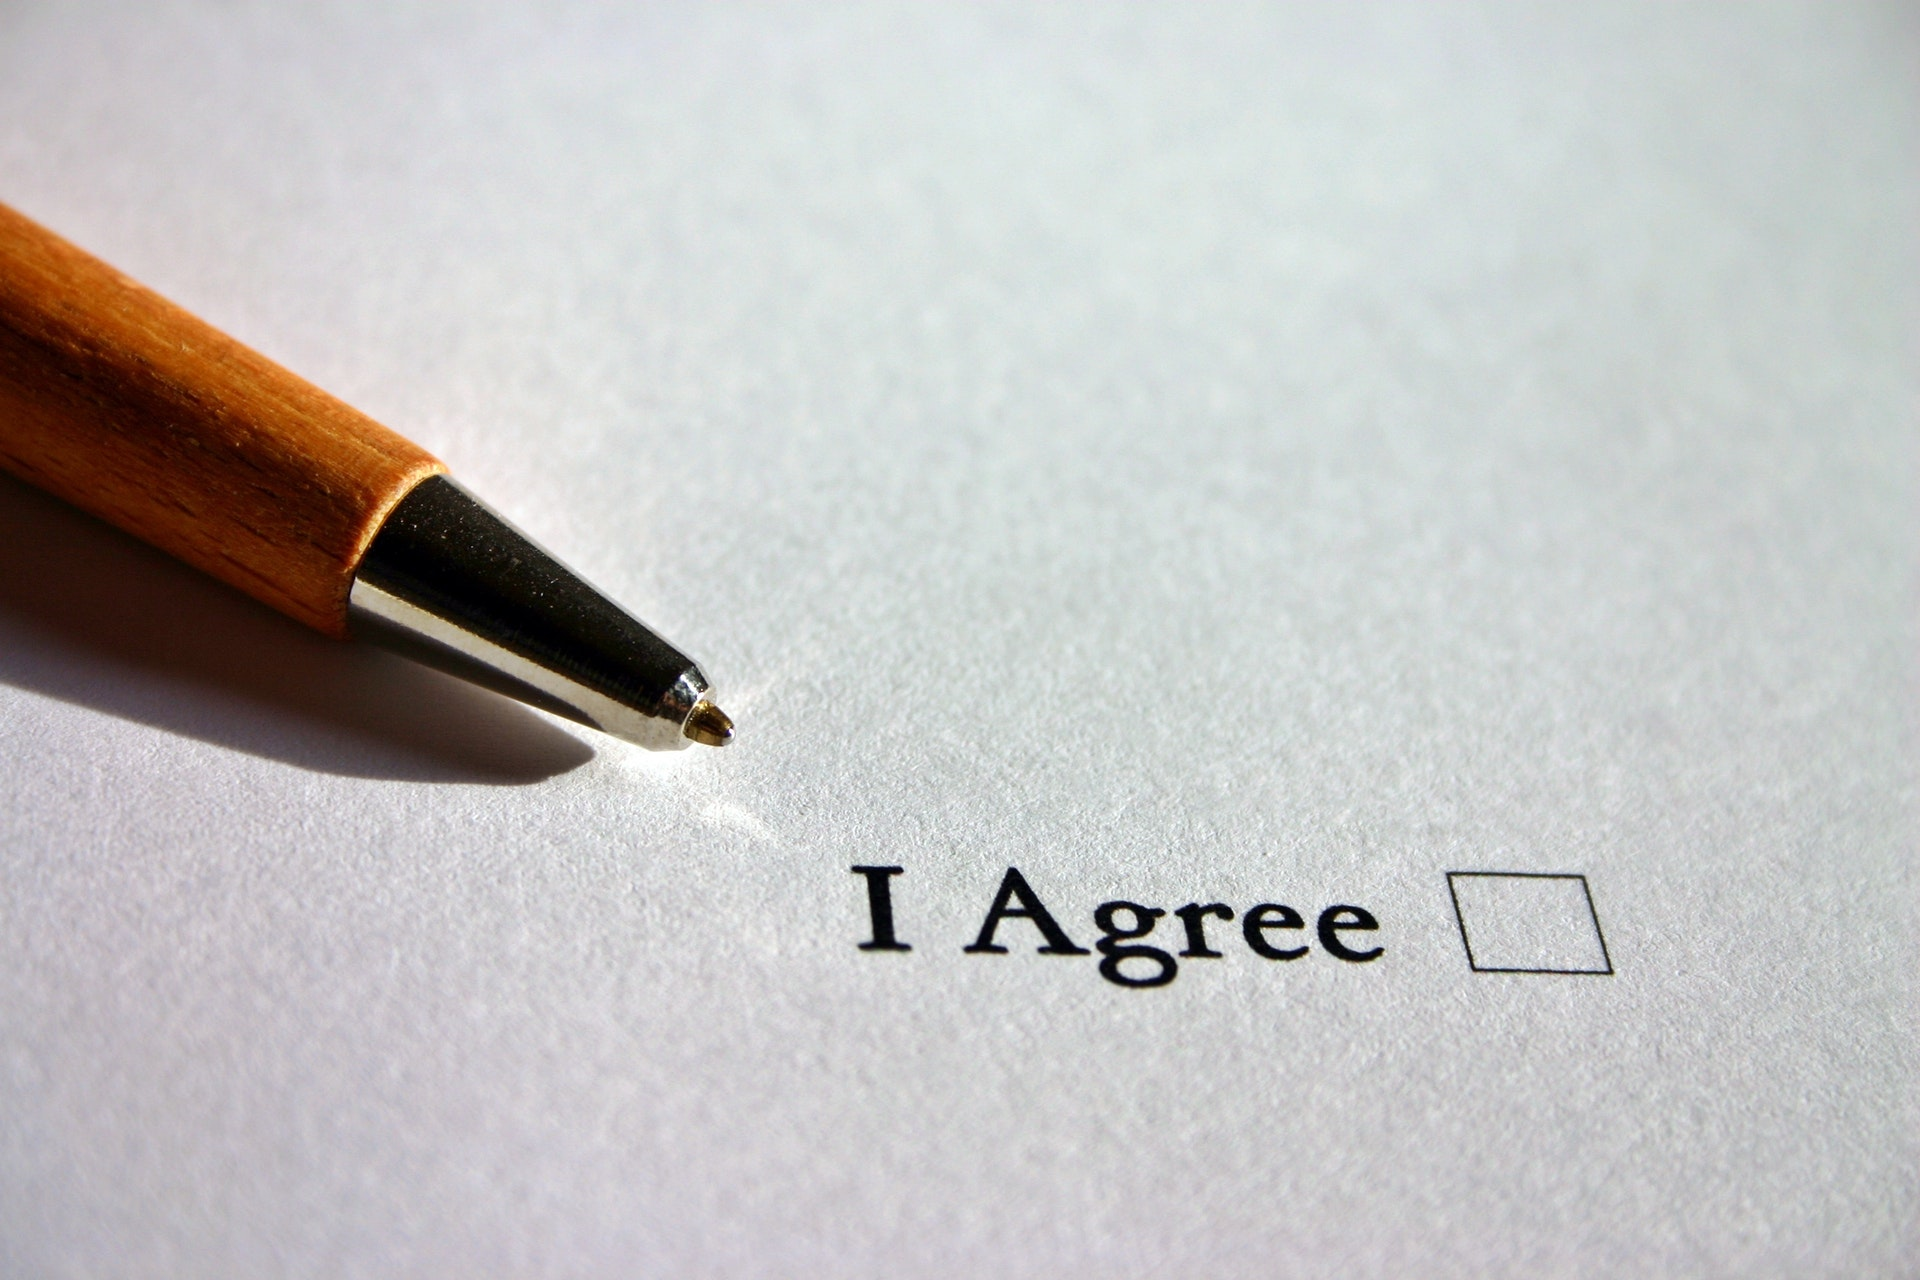 Agreements to Agree: What Can You Rely On?